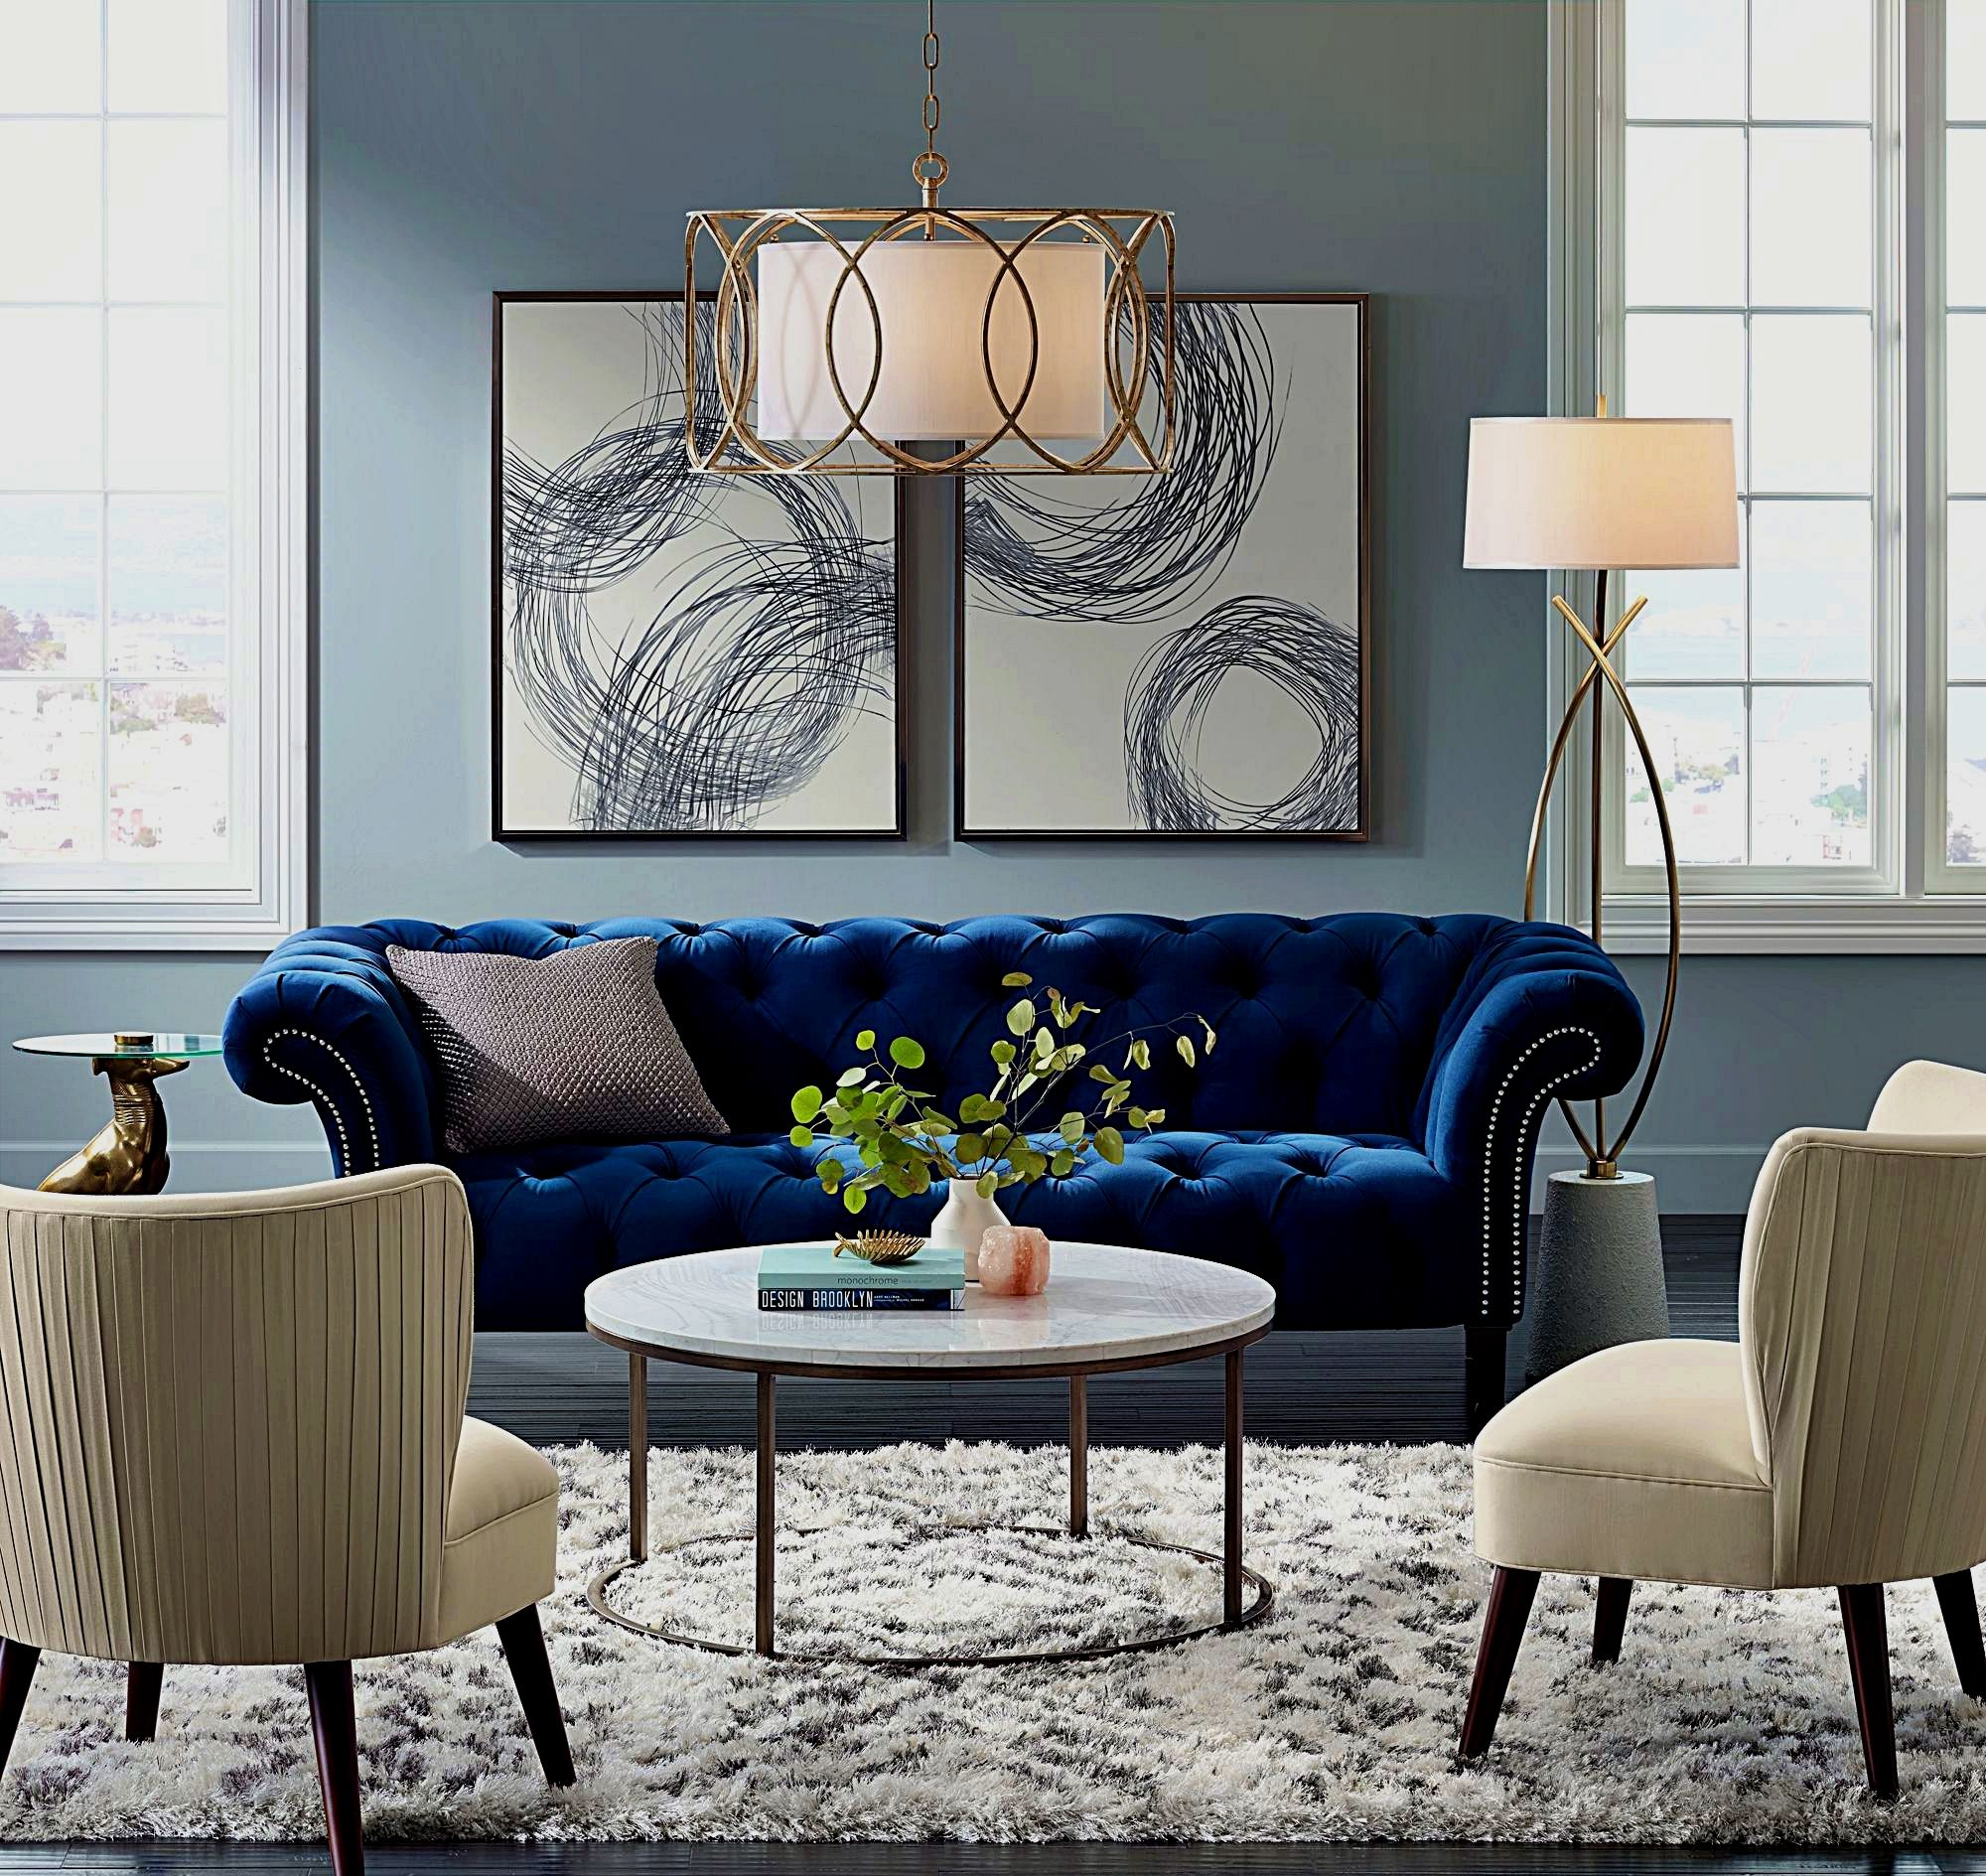 Indian Style Living Room Designs to Follow | Turquoise ...